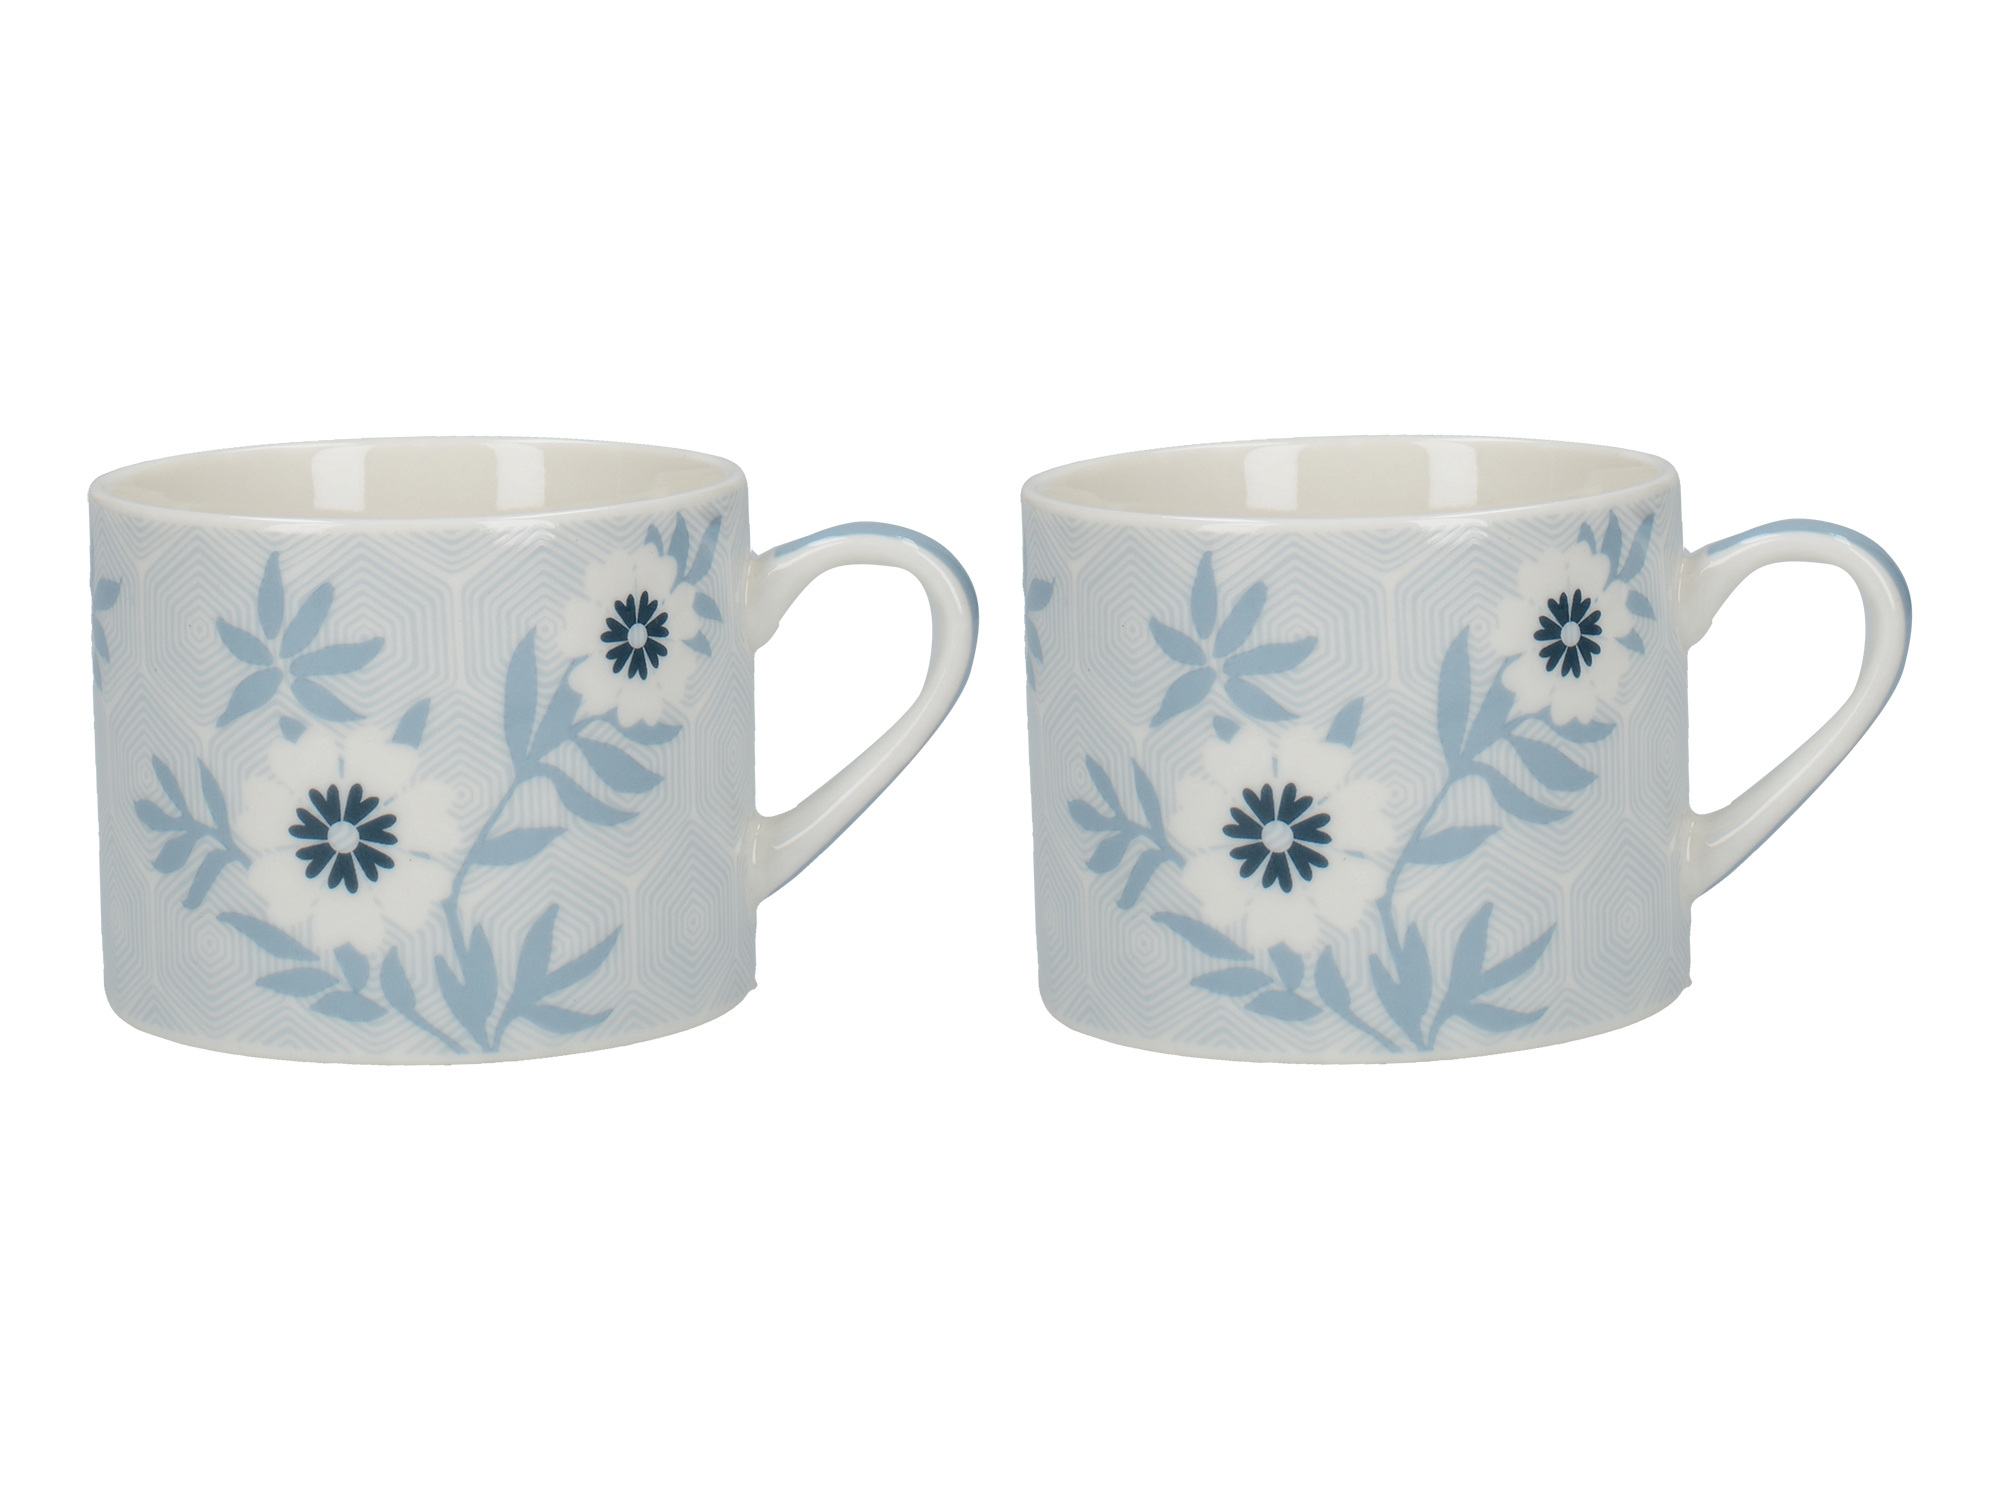 Victoria And Albert Matley Set Of 2 Espresso Mugs